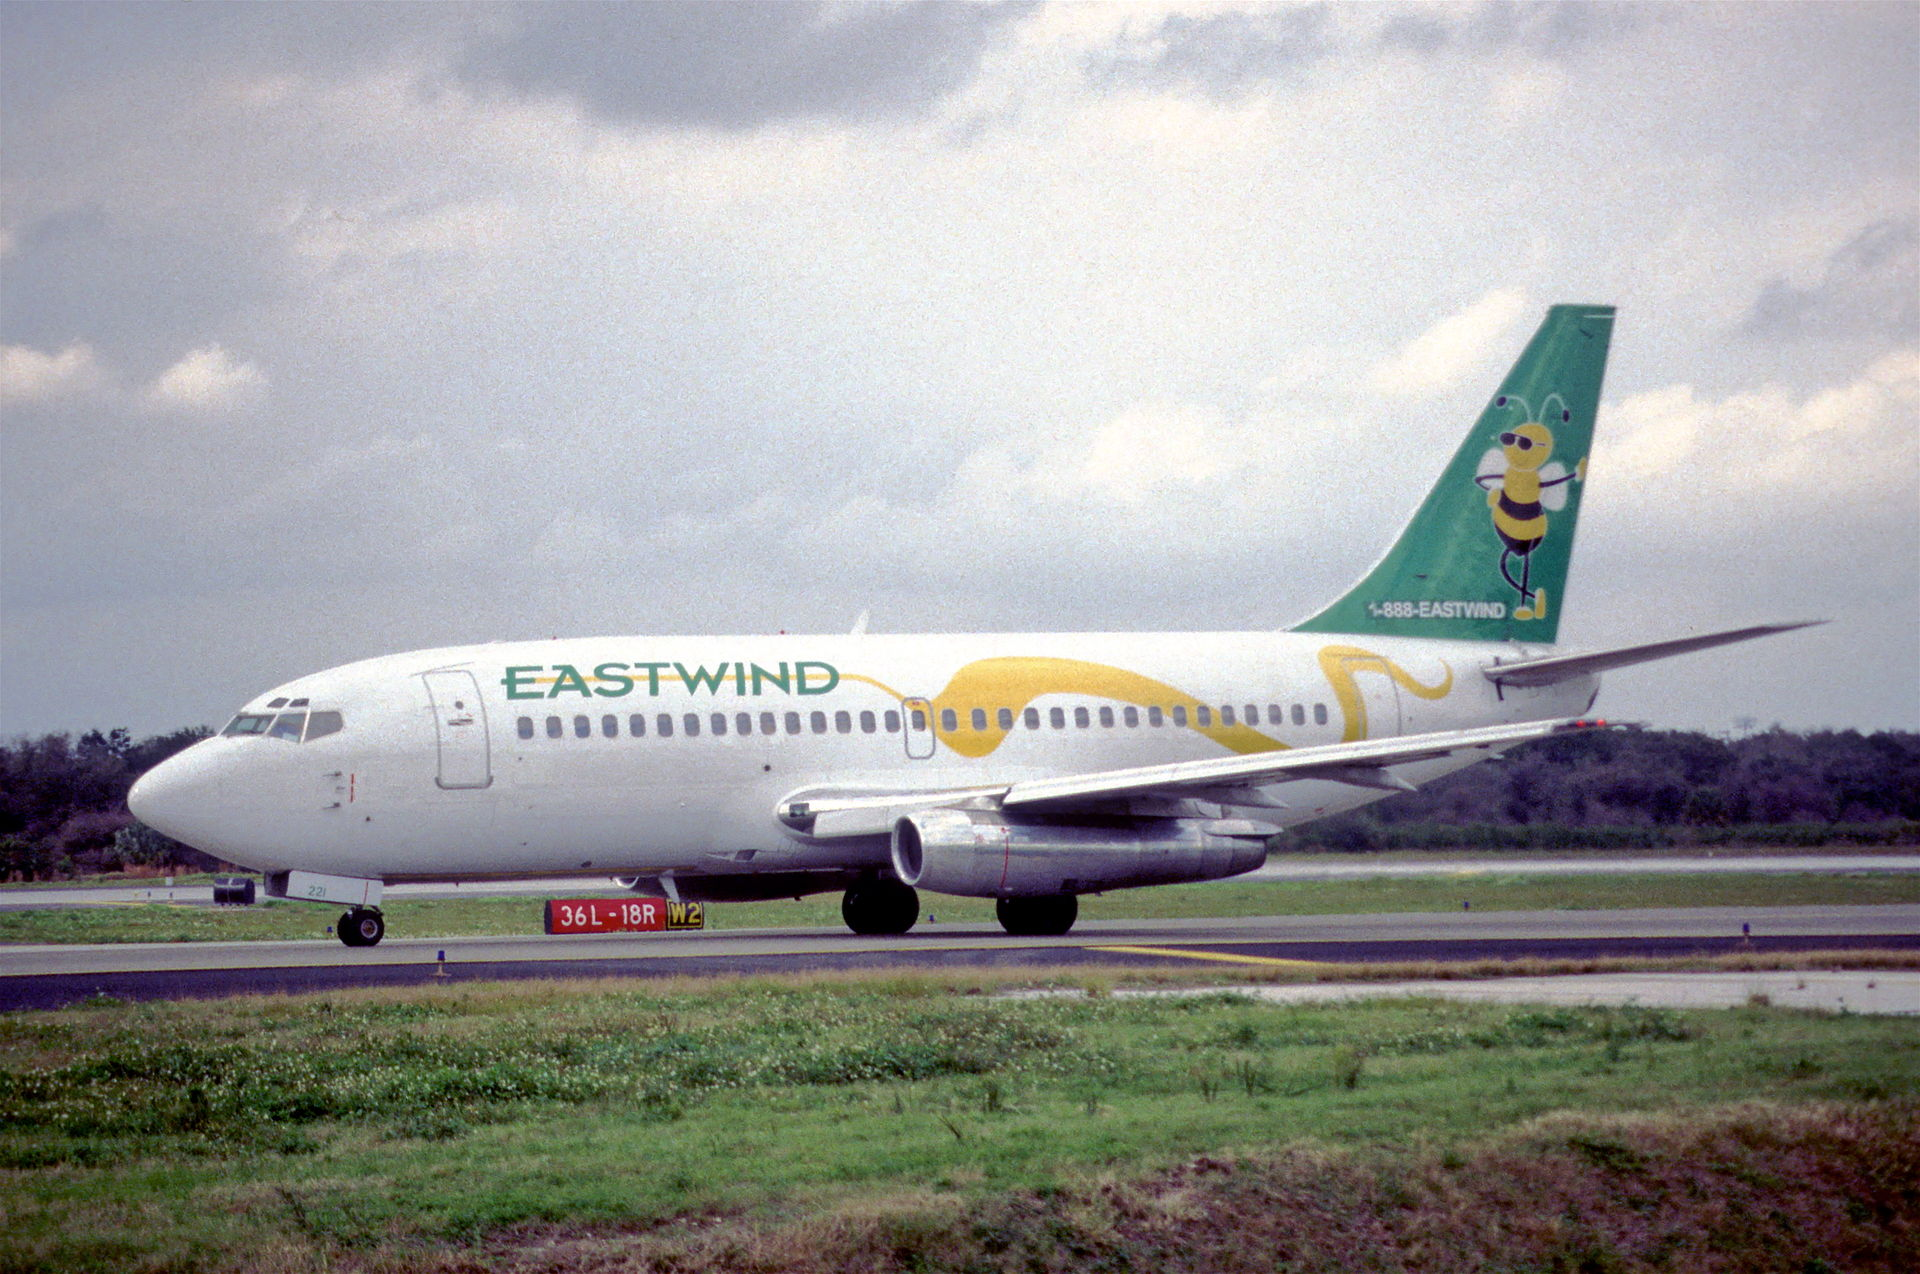 Eastwind-517